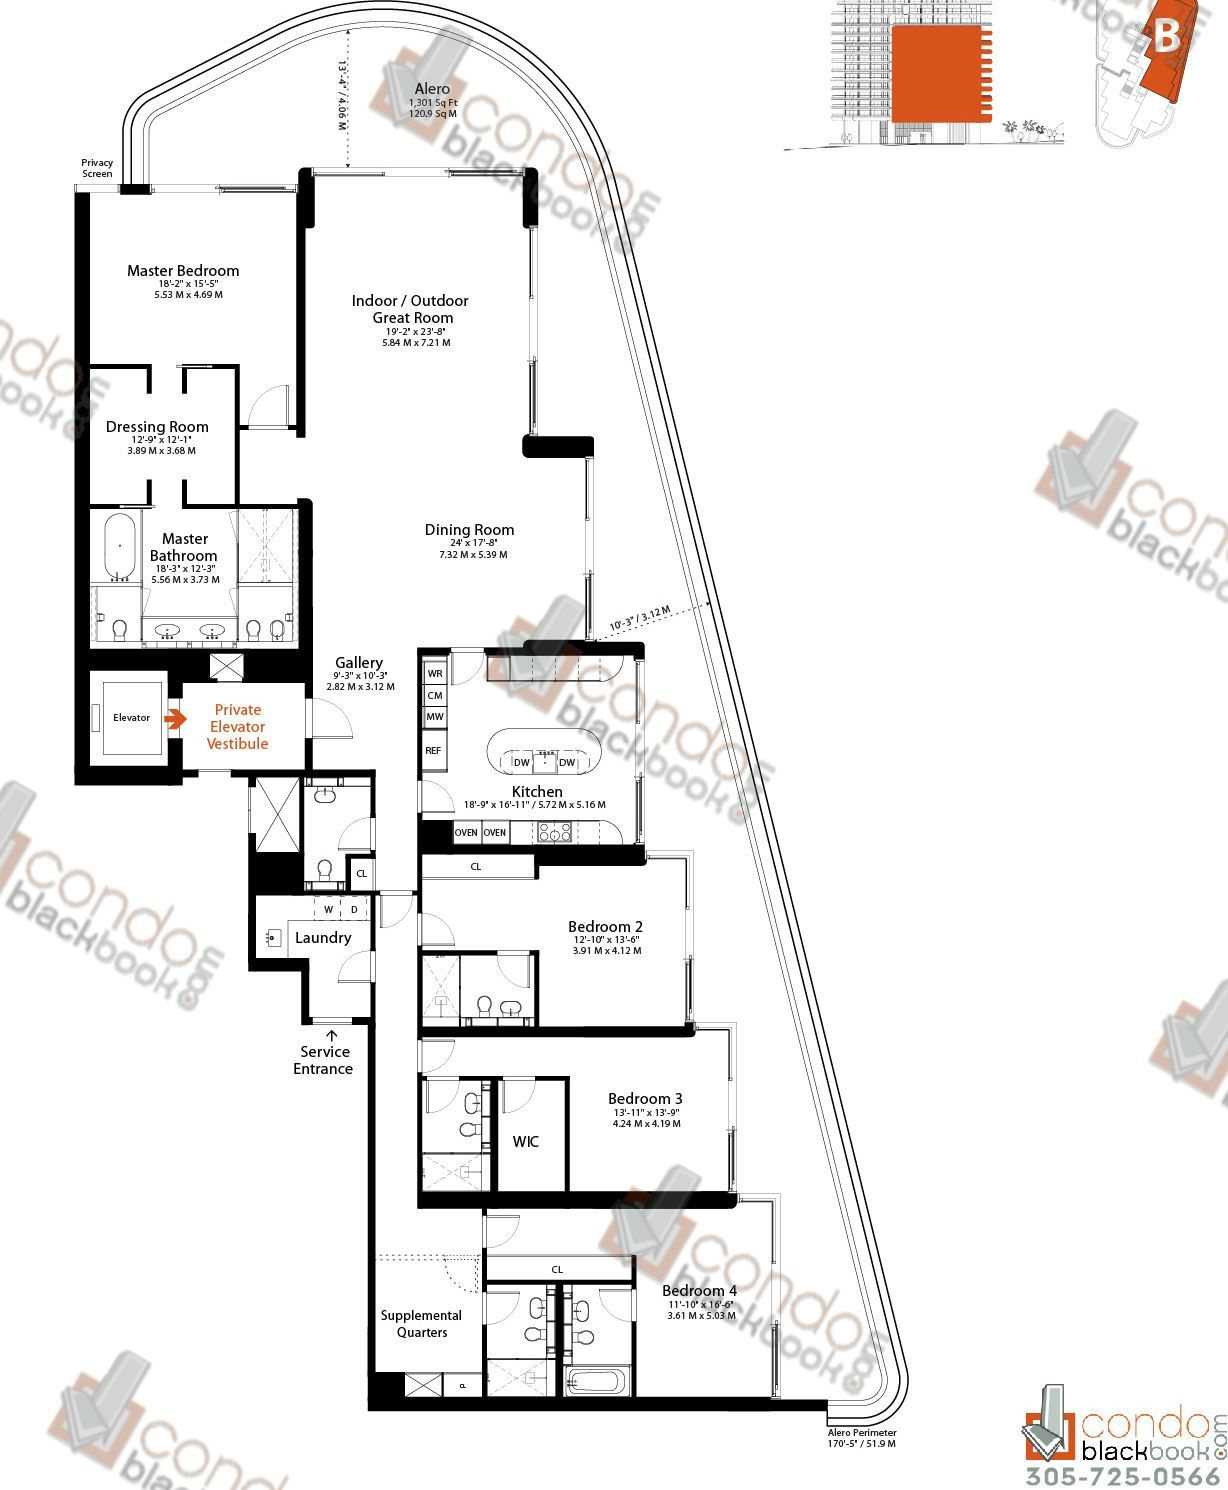 Faena House Site Plan And Floor Plans In Miami Beach Miami Faena House Floor Plans Apartment Floor Plans